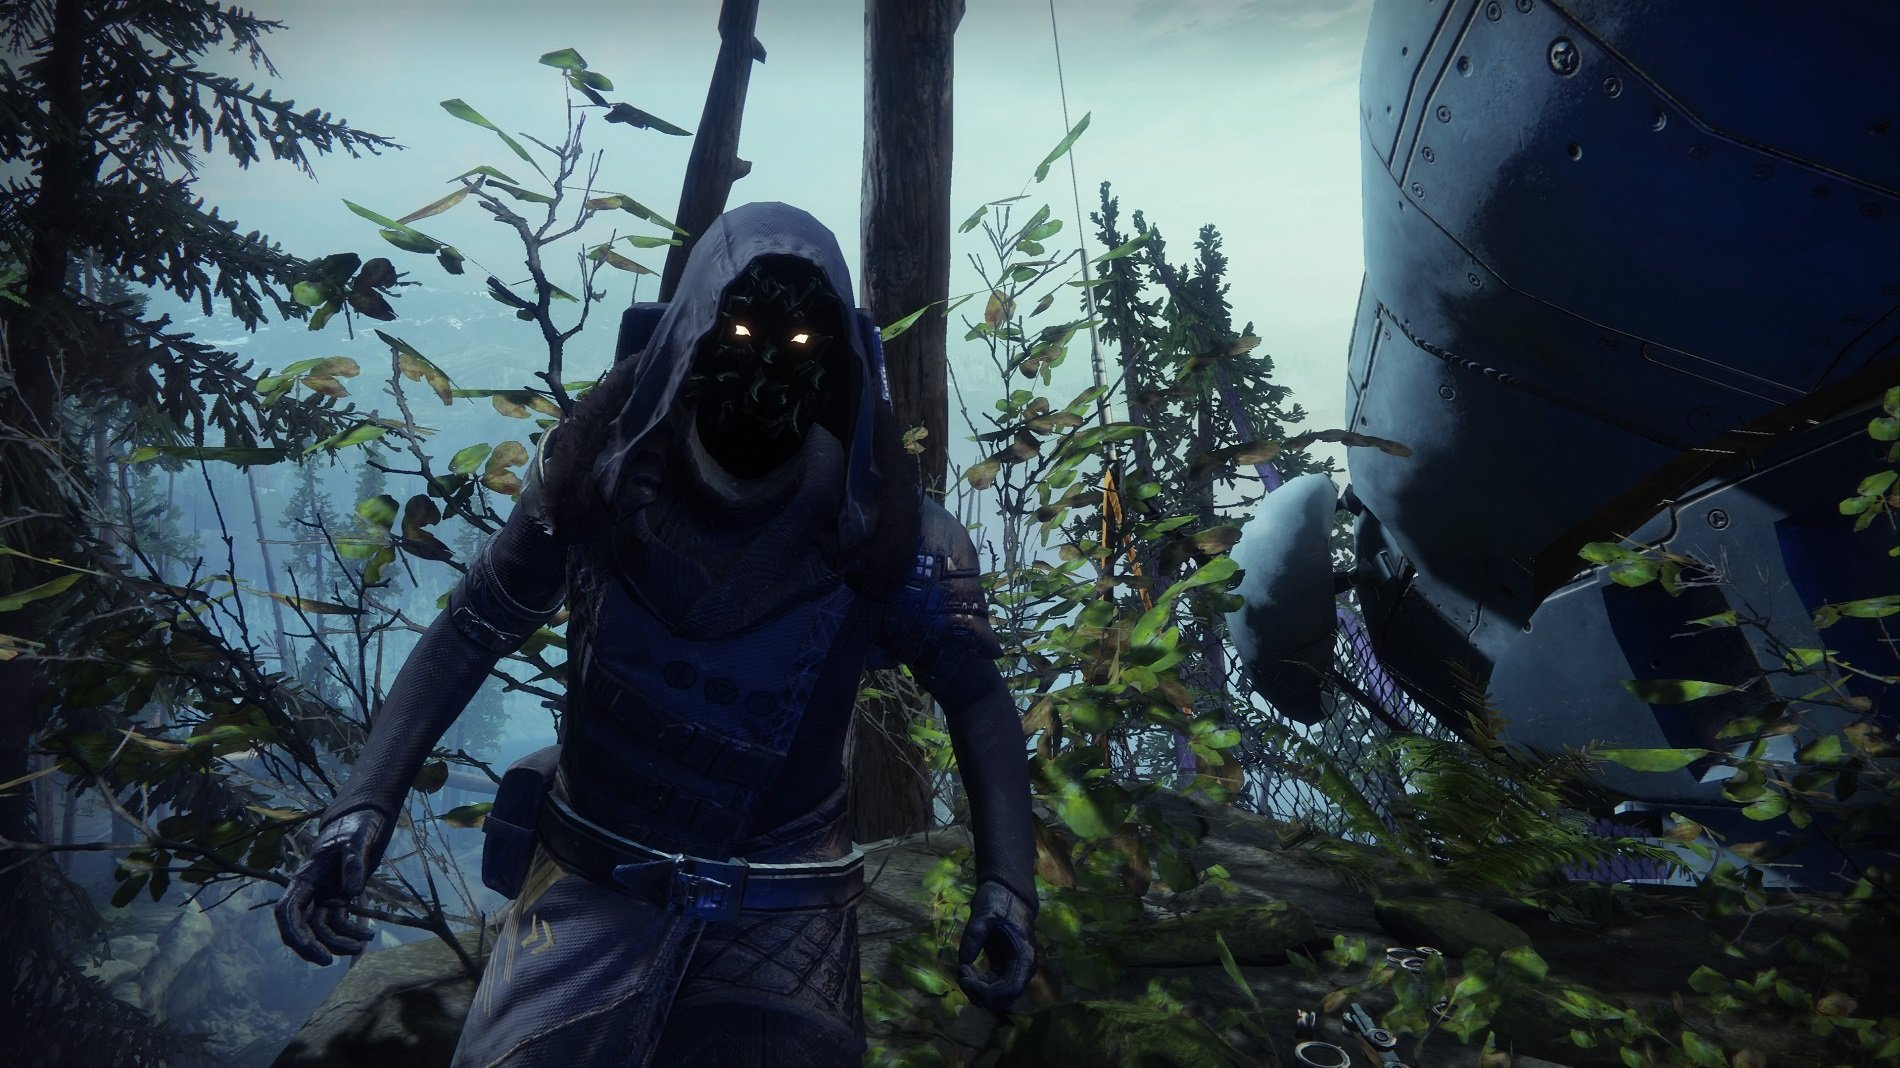 Where to find Xur in Destiny 2 - September 11, 2020